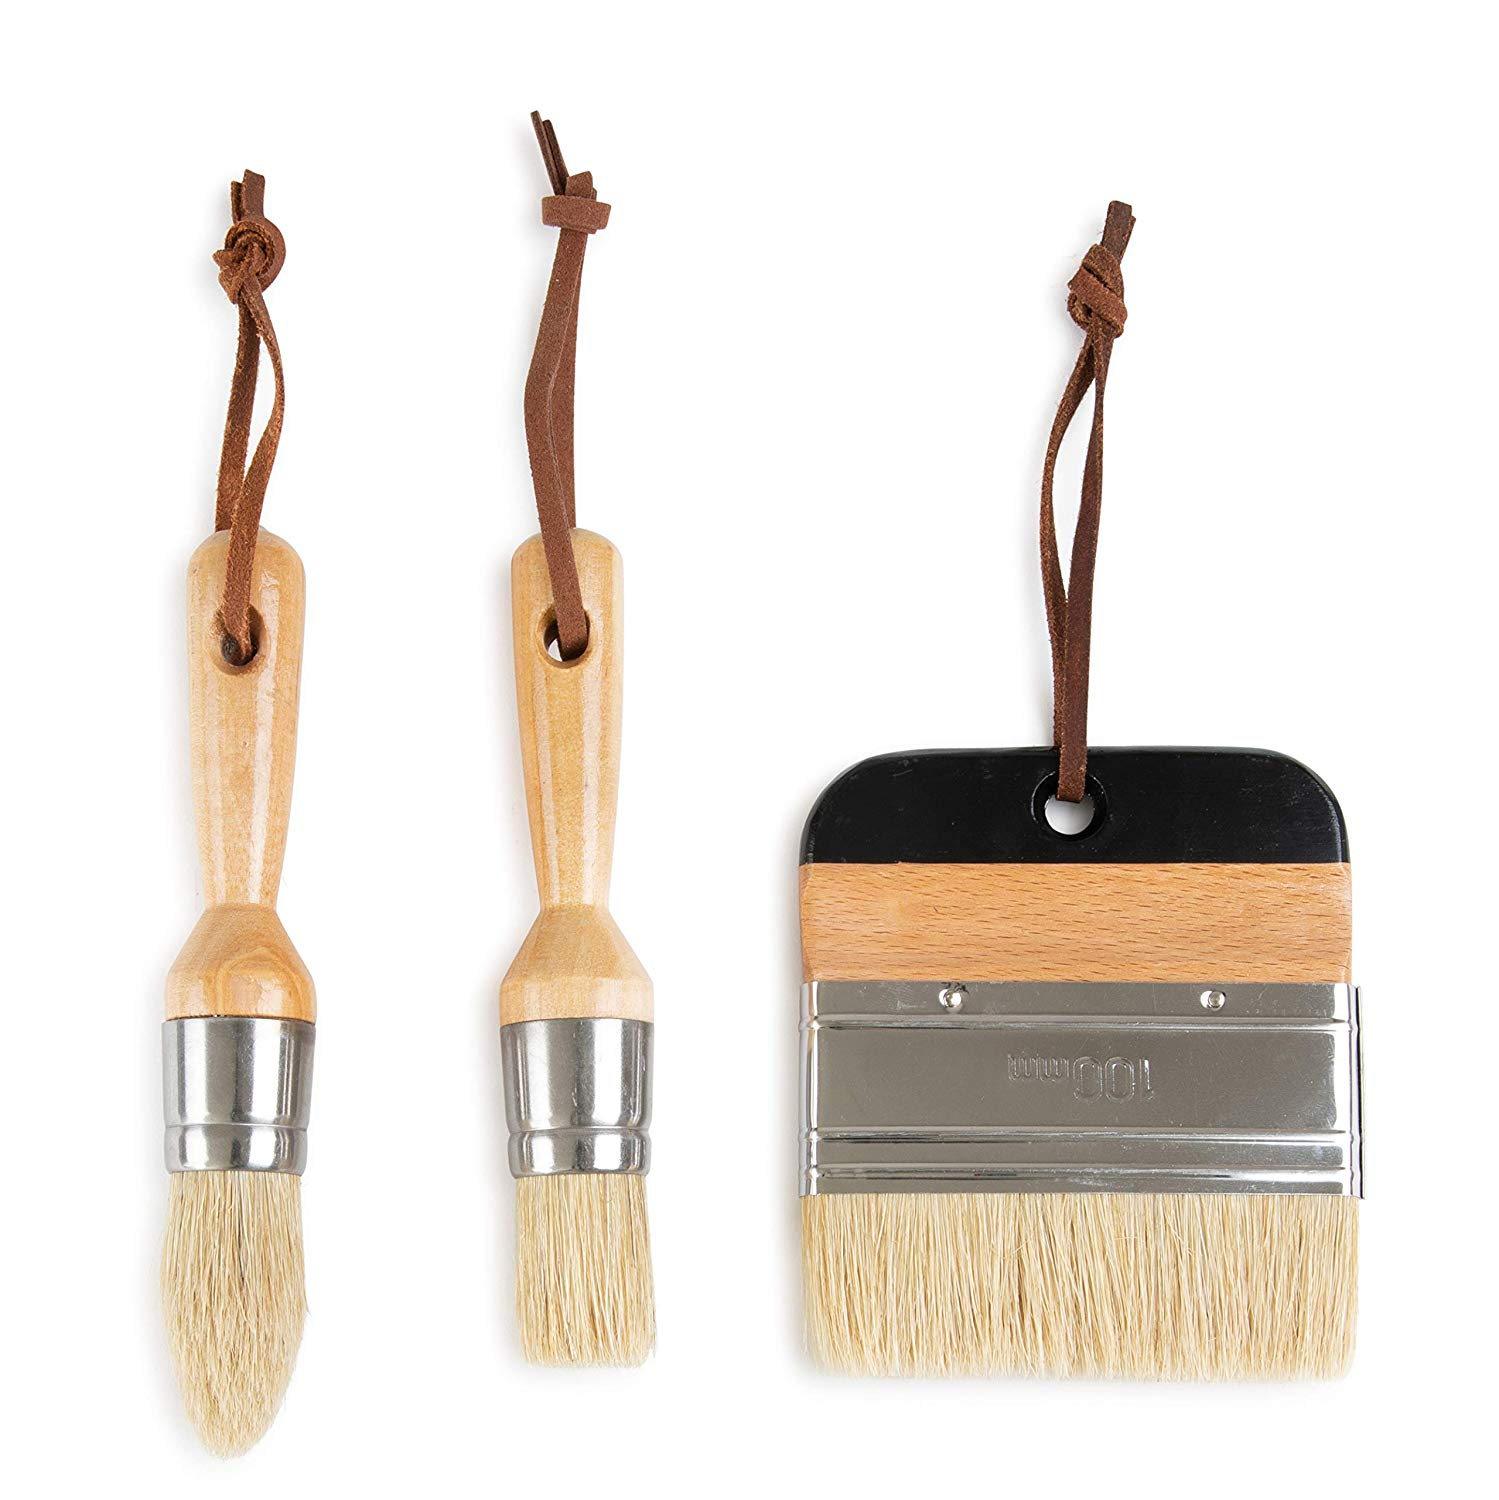 3 Piece Paint Brush Set by DIYARTZ, Perfect Chalk and Wax Paint, Natural Bristles, Thick and Durable